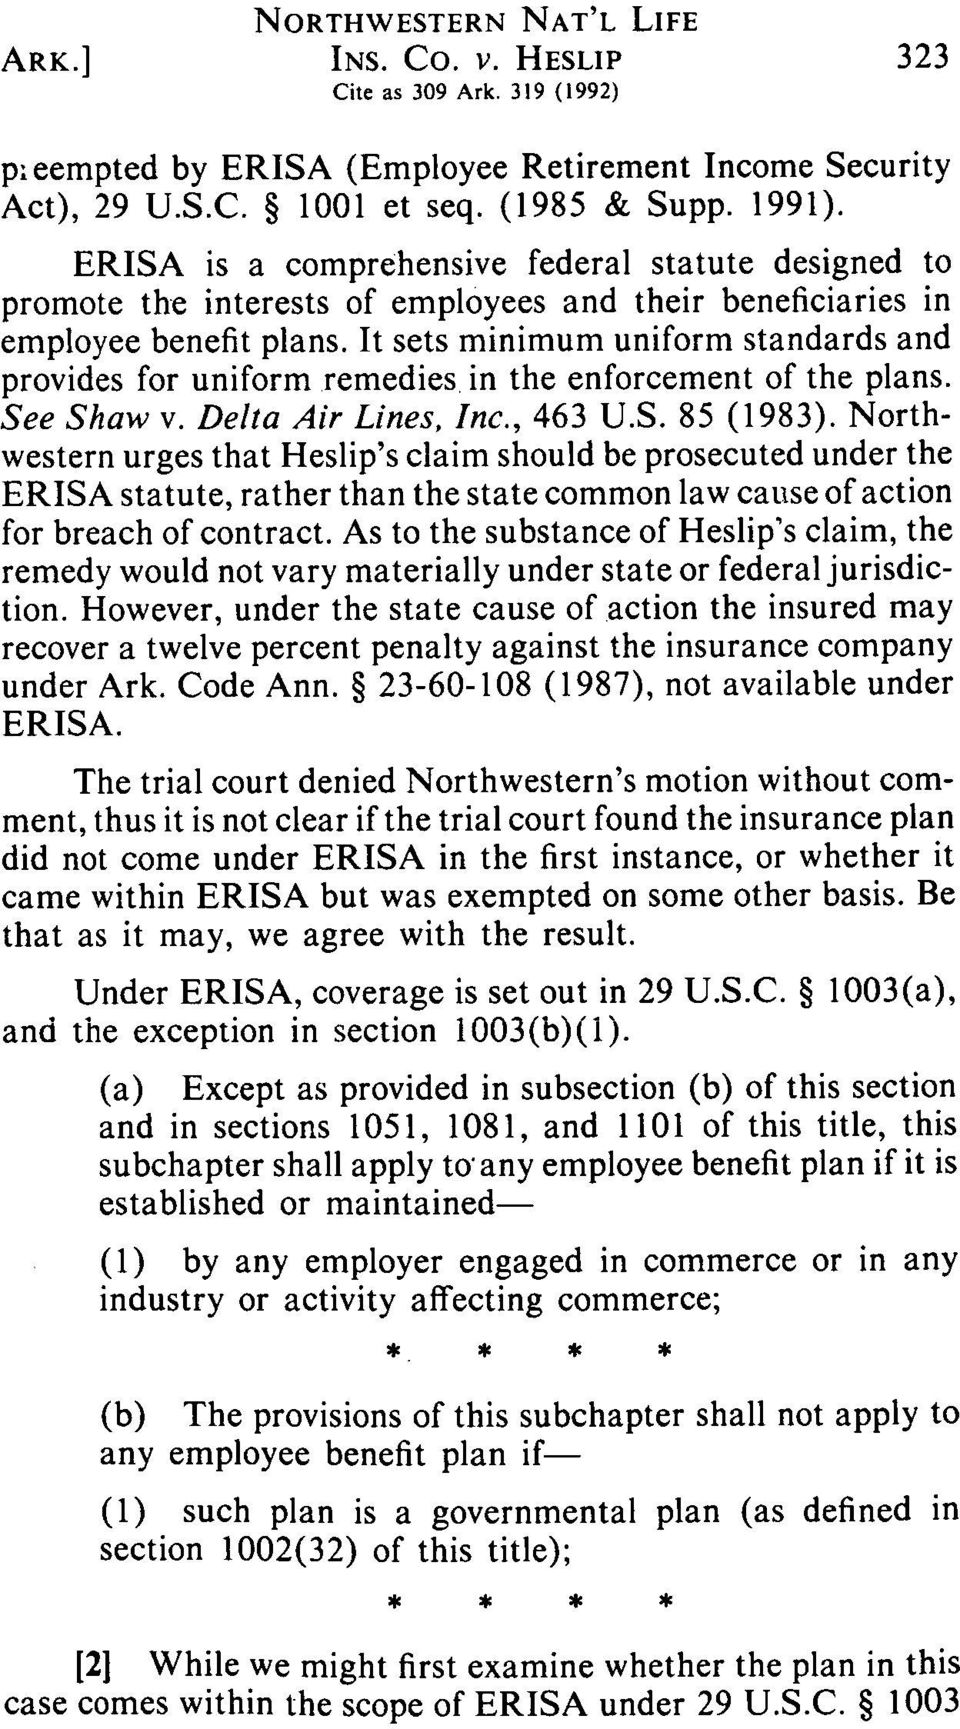 It sets minimum uniform standards and provides for uniform remedies in the enforcement of the plans. See Shaw v. Delta Air Lines, Inc., 463 U.S. 85 (1983).